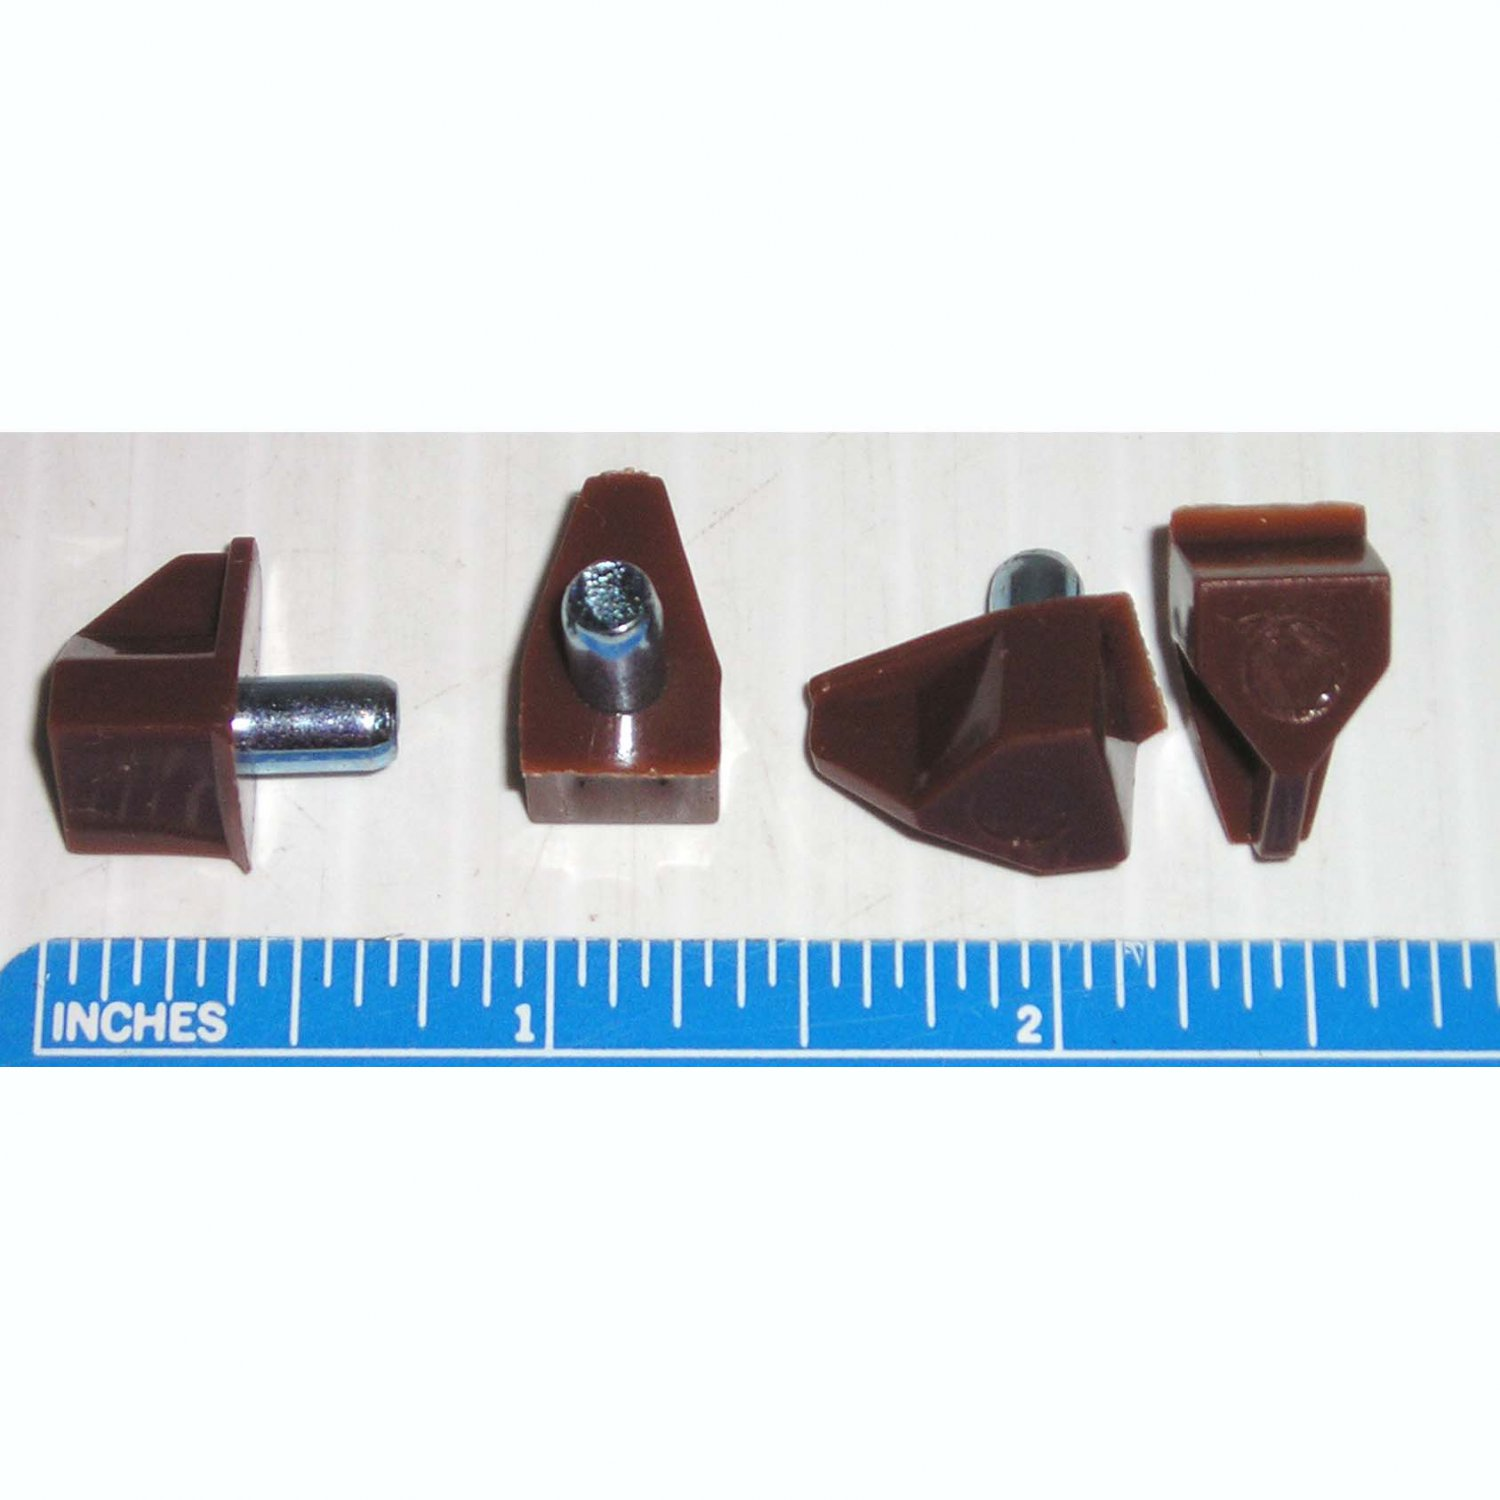 5MM Steel Post with Brown Plastic Shelf Support Pin - Rest - Peg (8 Pack)